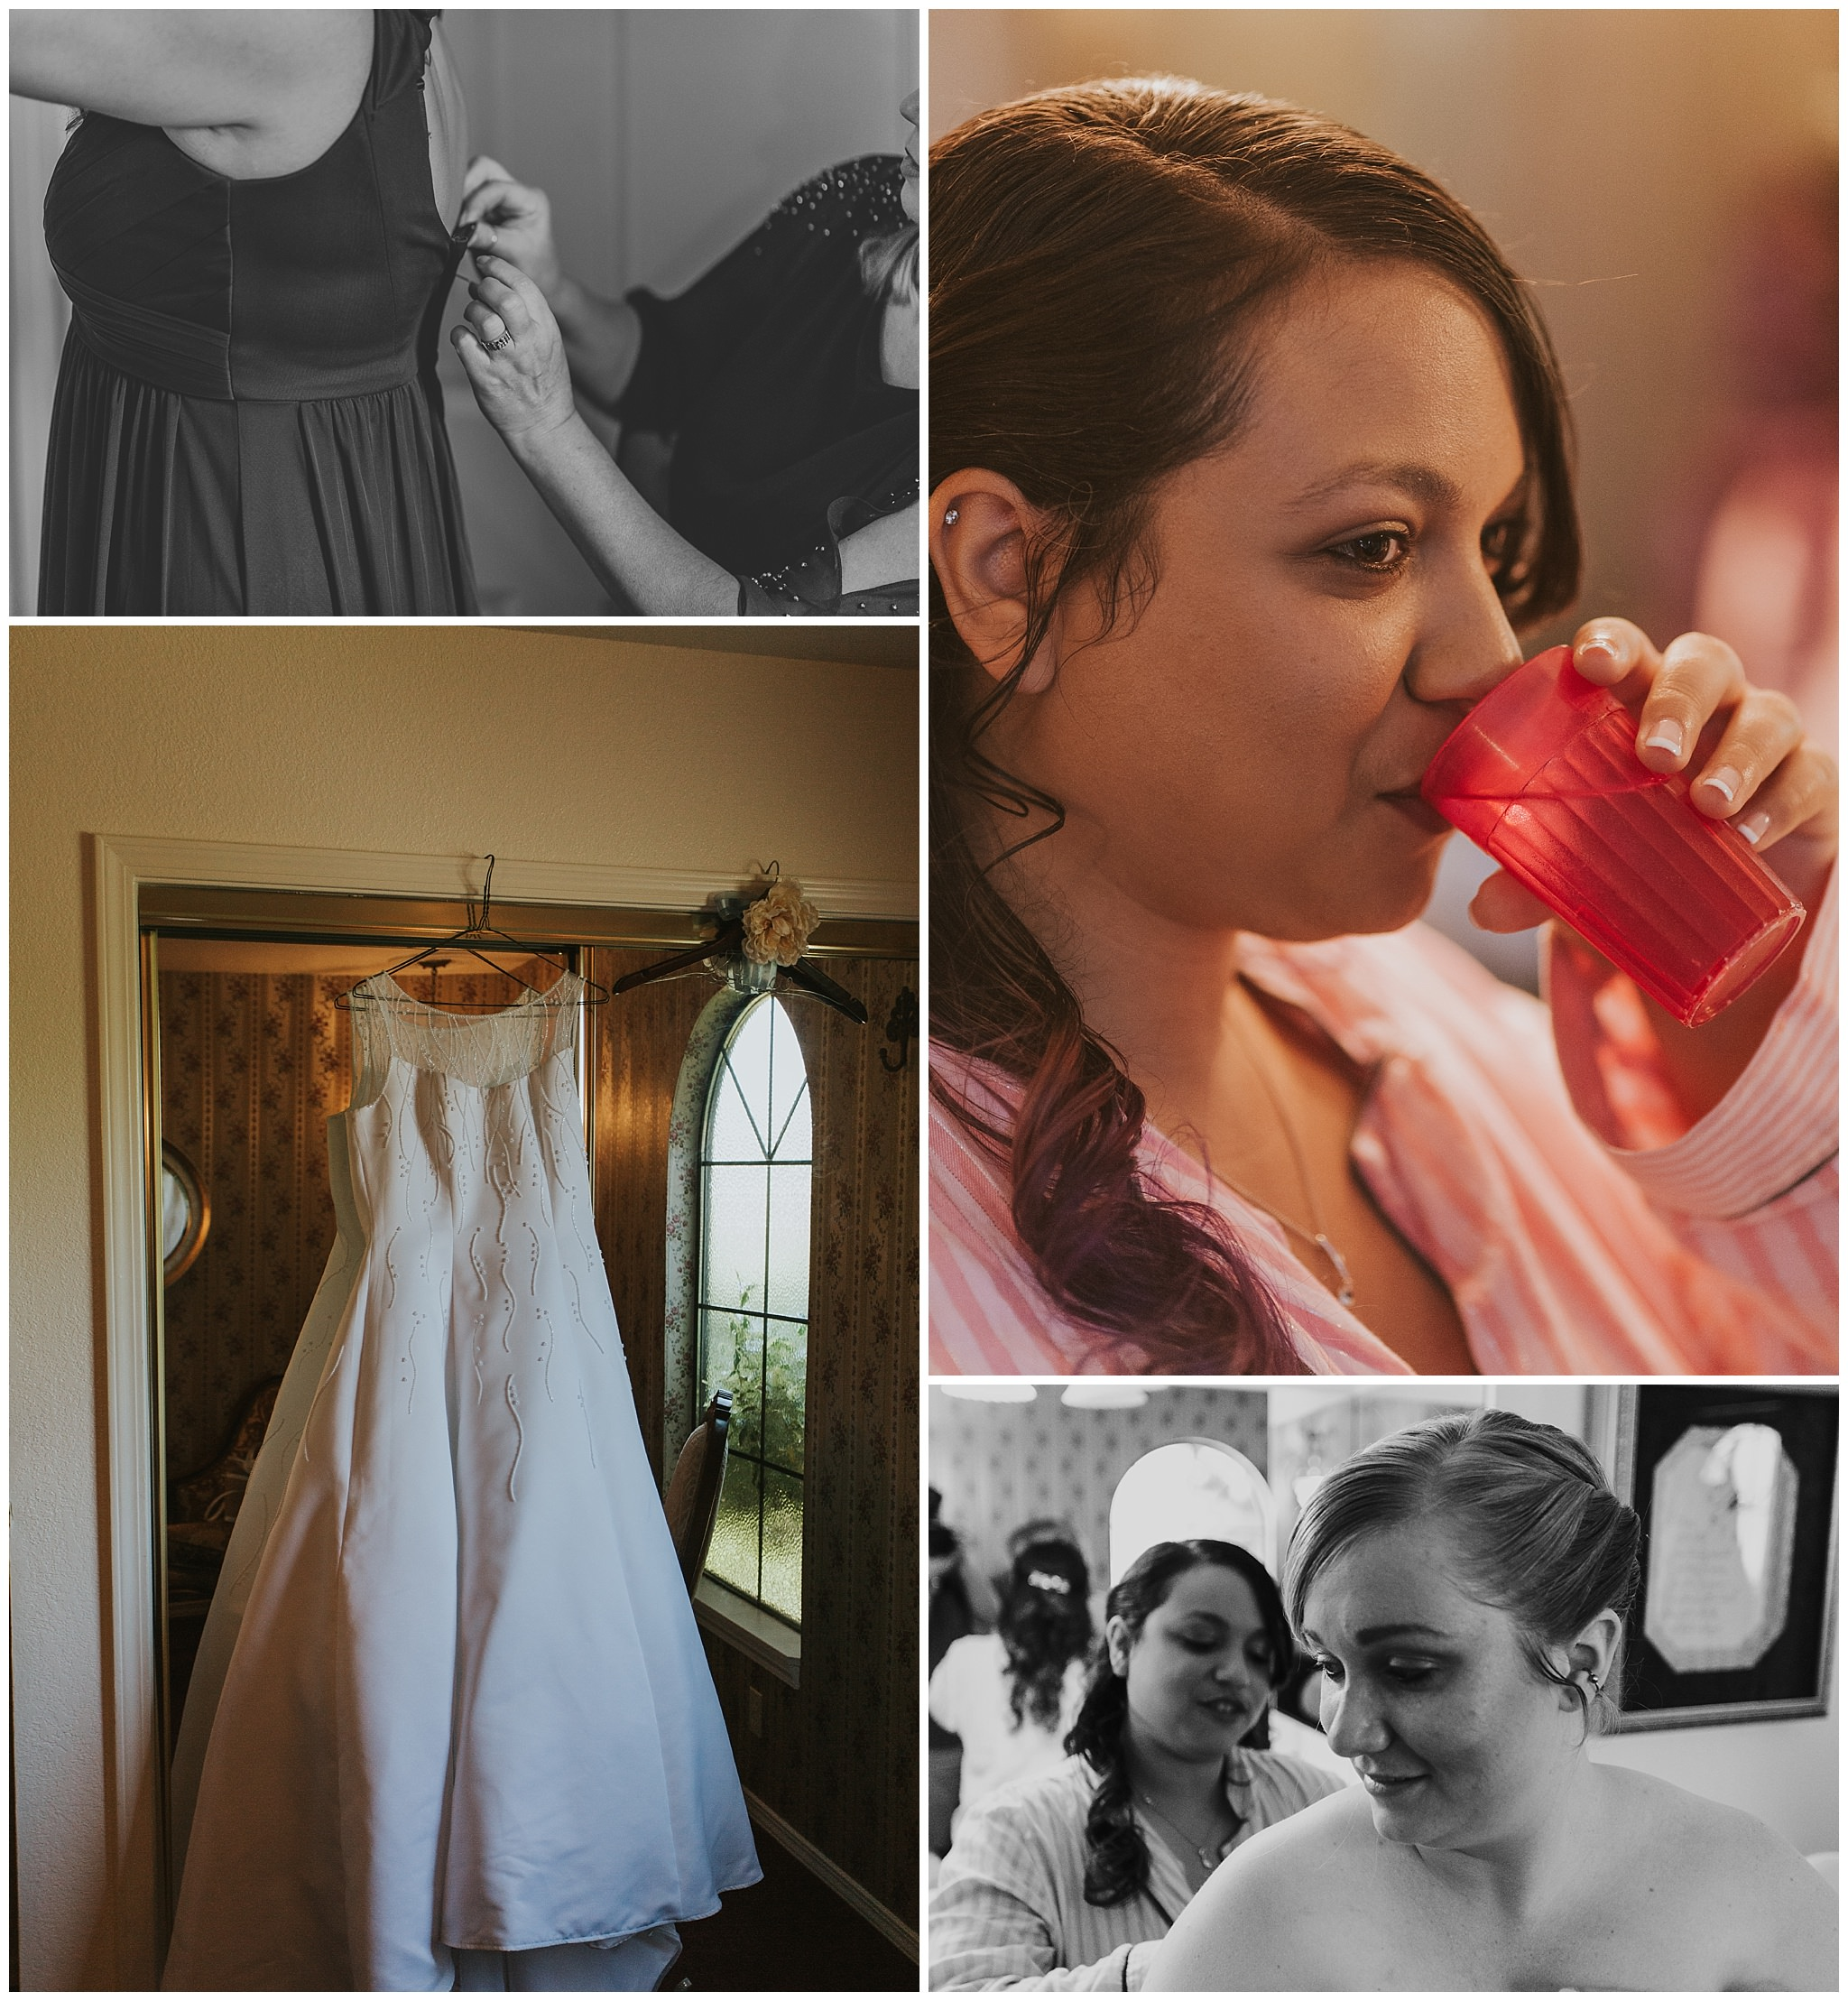 bride and bridesmaid getting ready for wedding